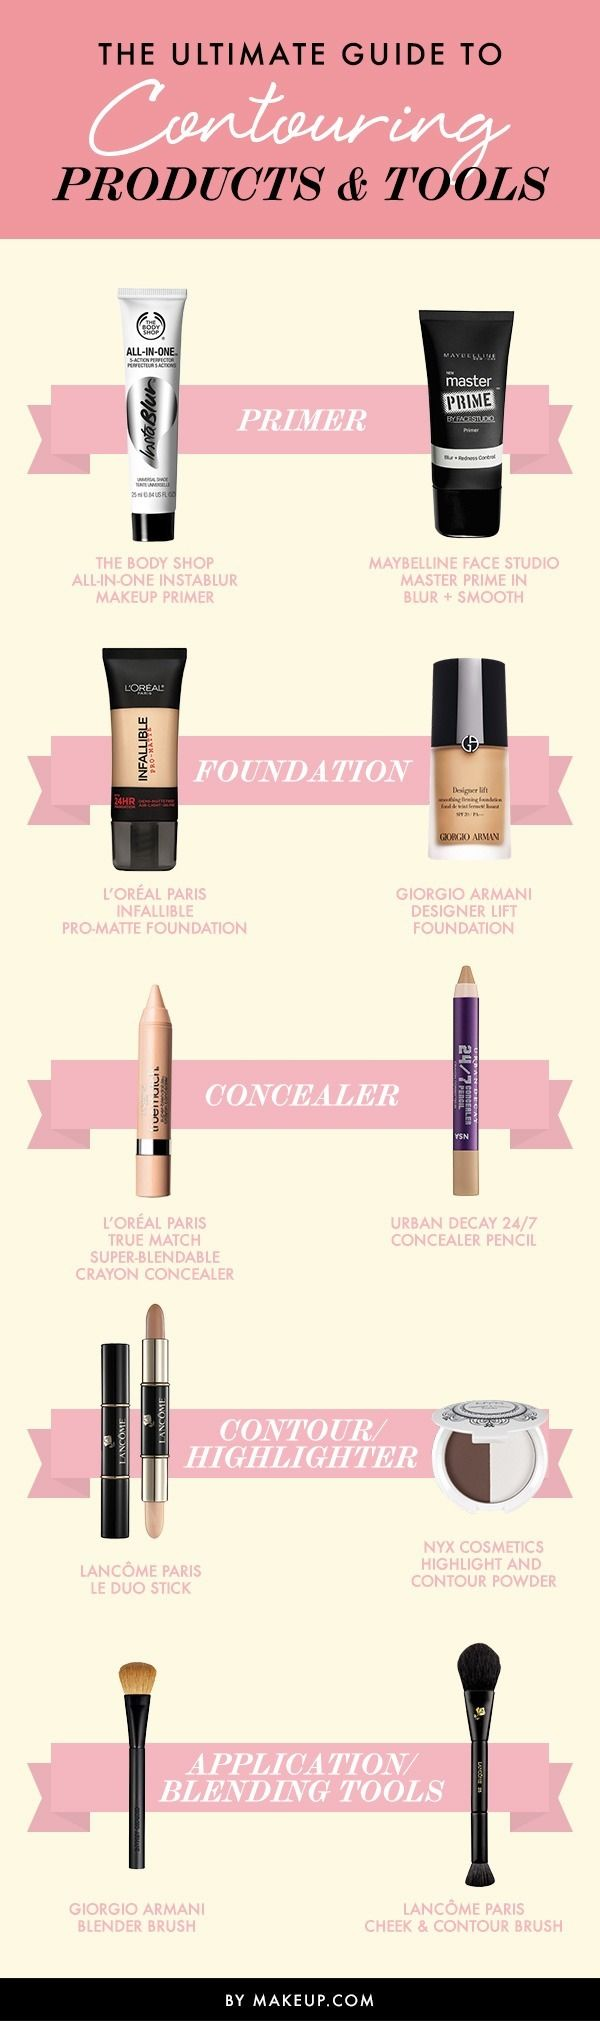 Contouring Products and Tools @Make